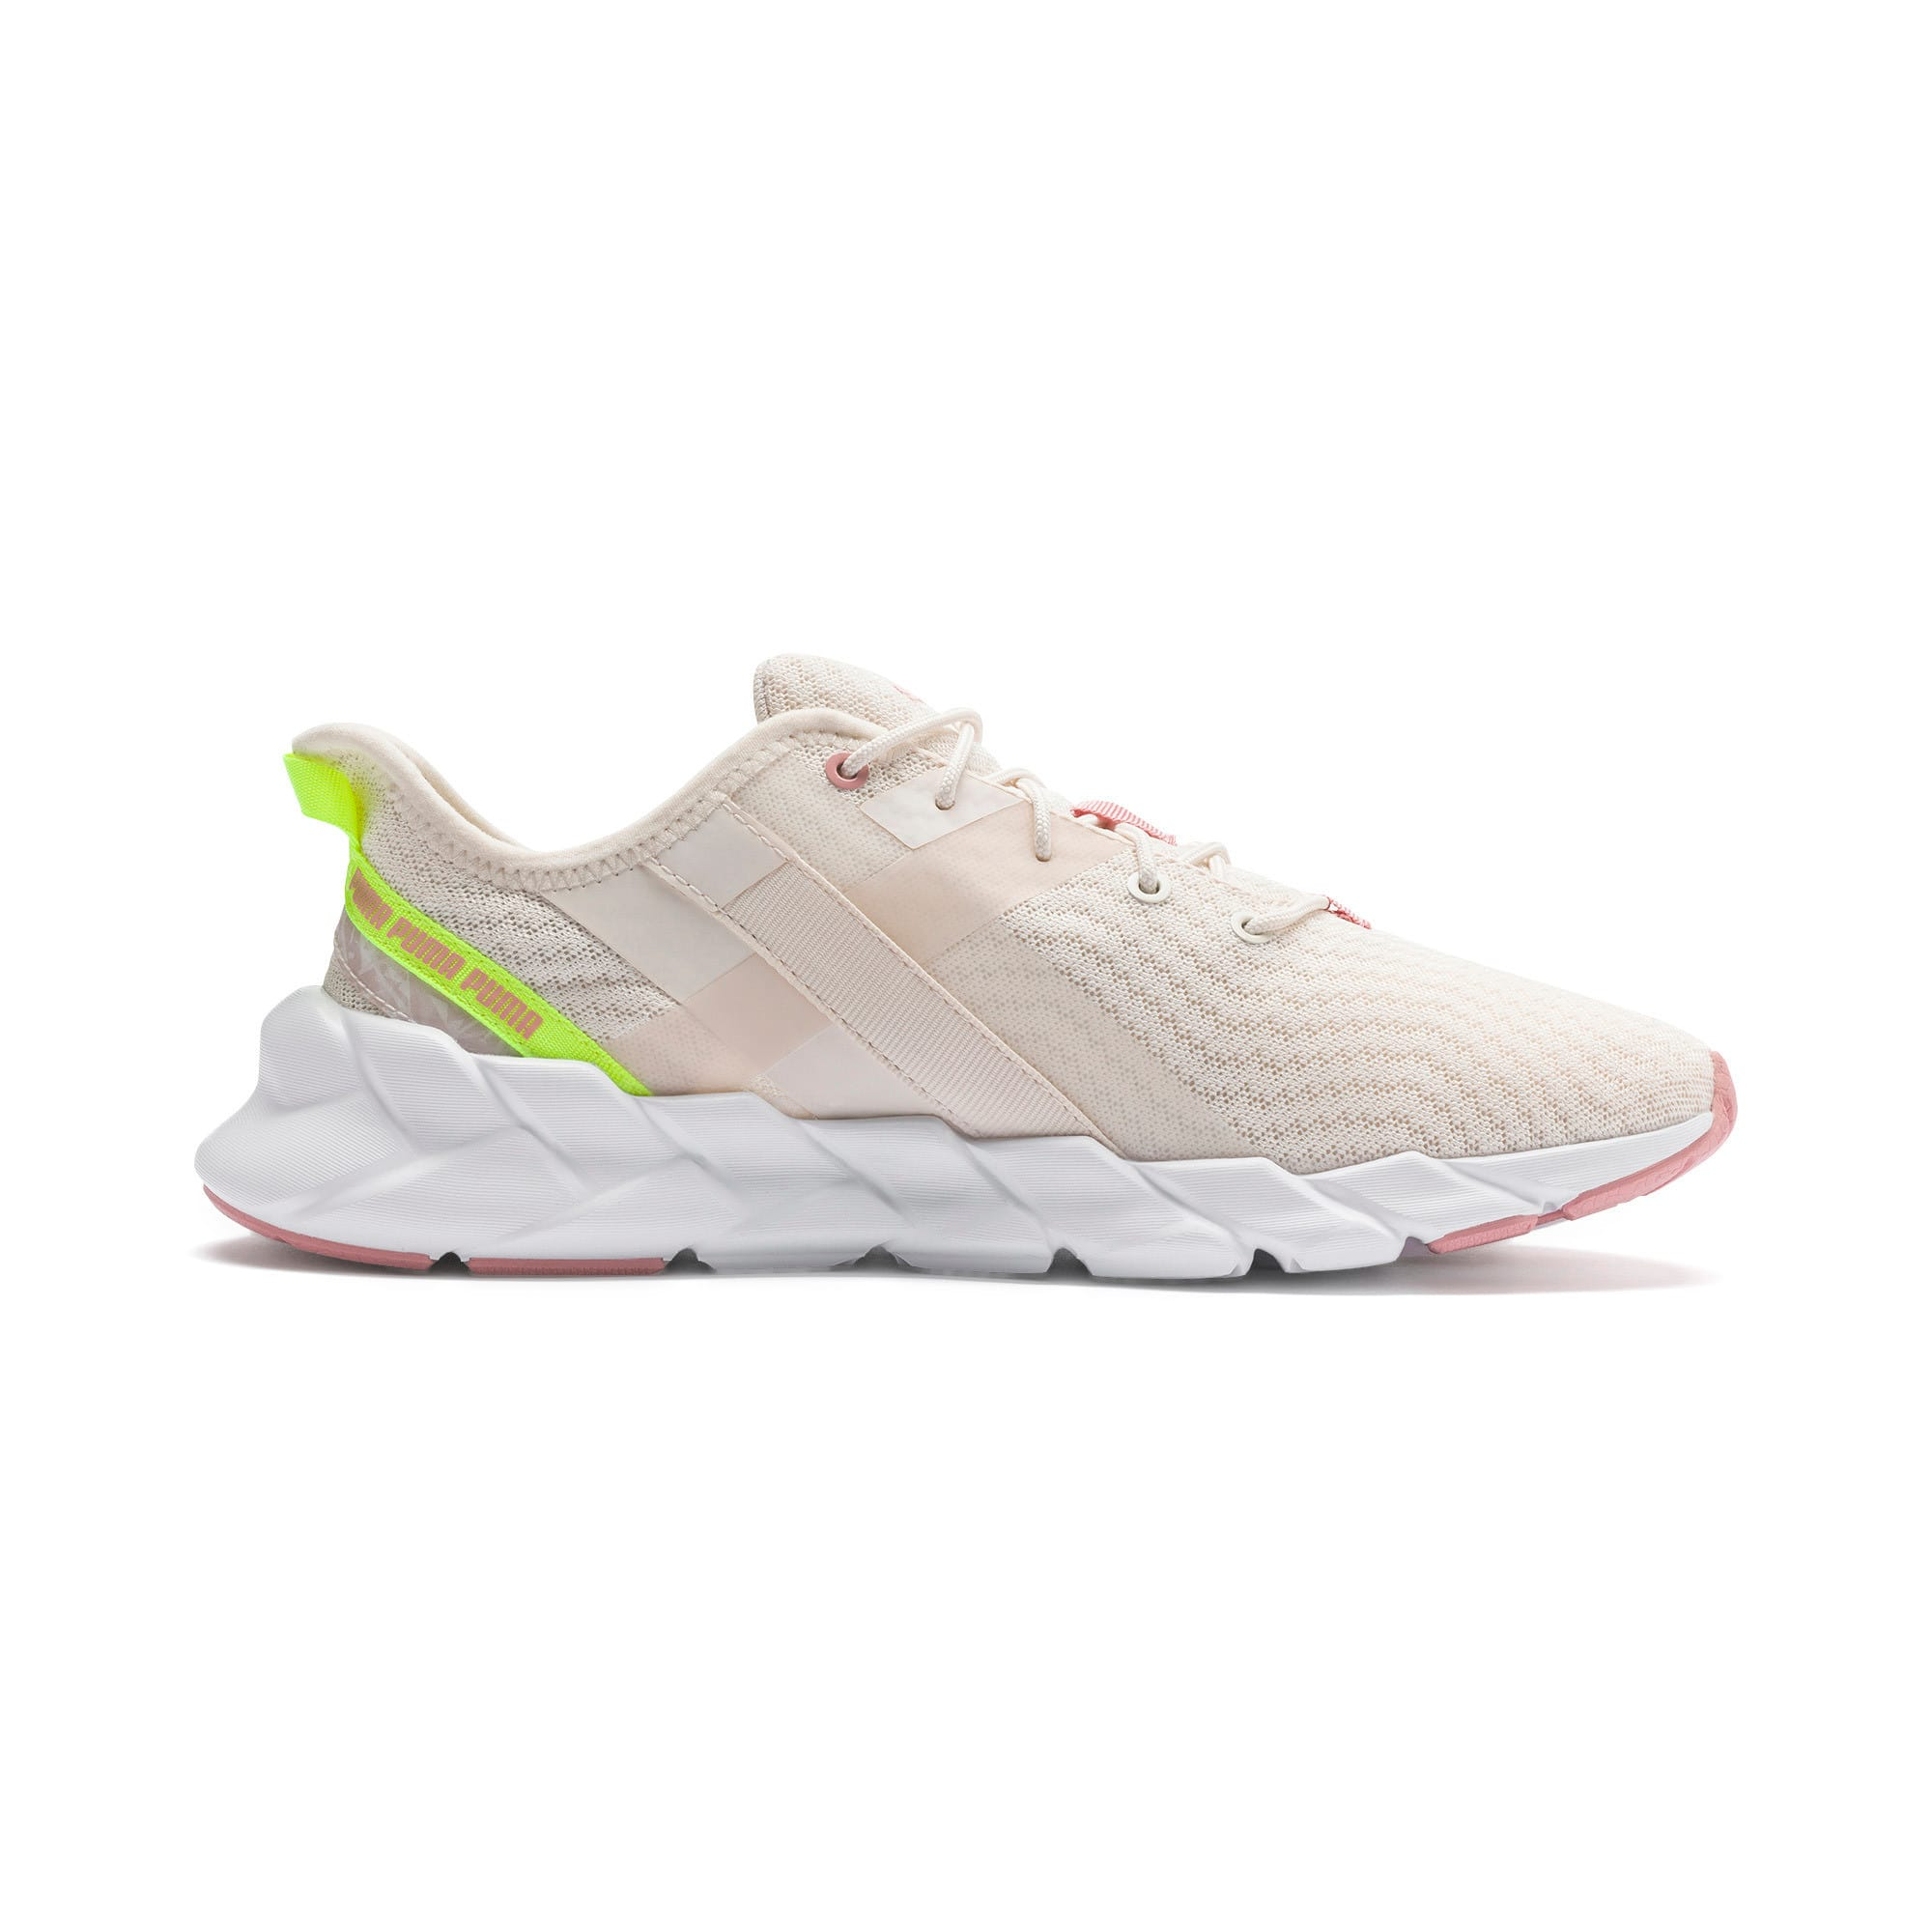 Thumbnail 7 of Weave XT Shift Women's Training Shoes, Pastel Parchment-Puma White, medium